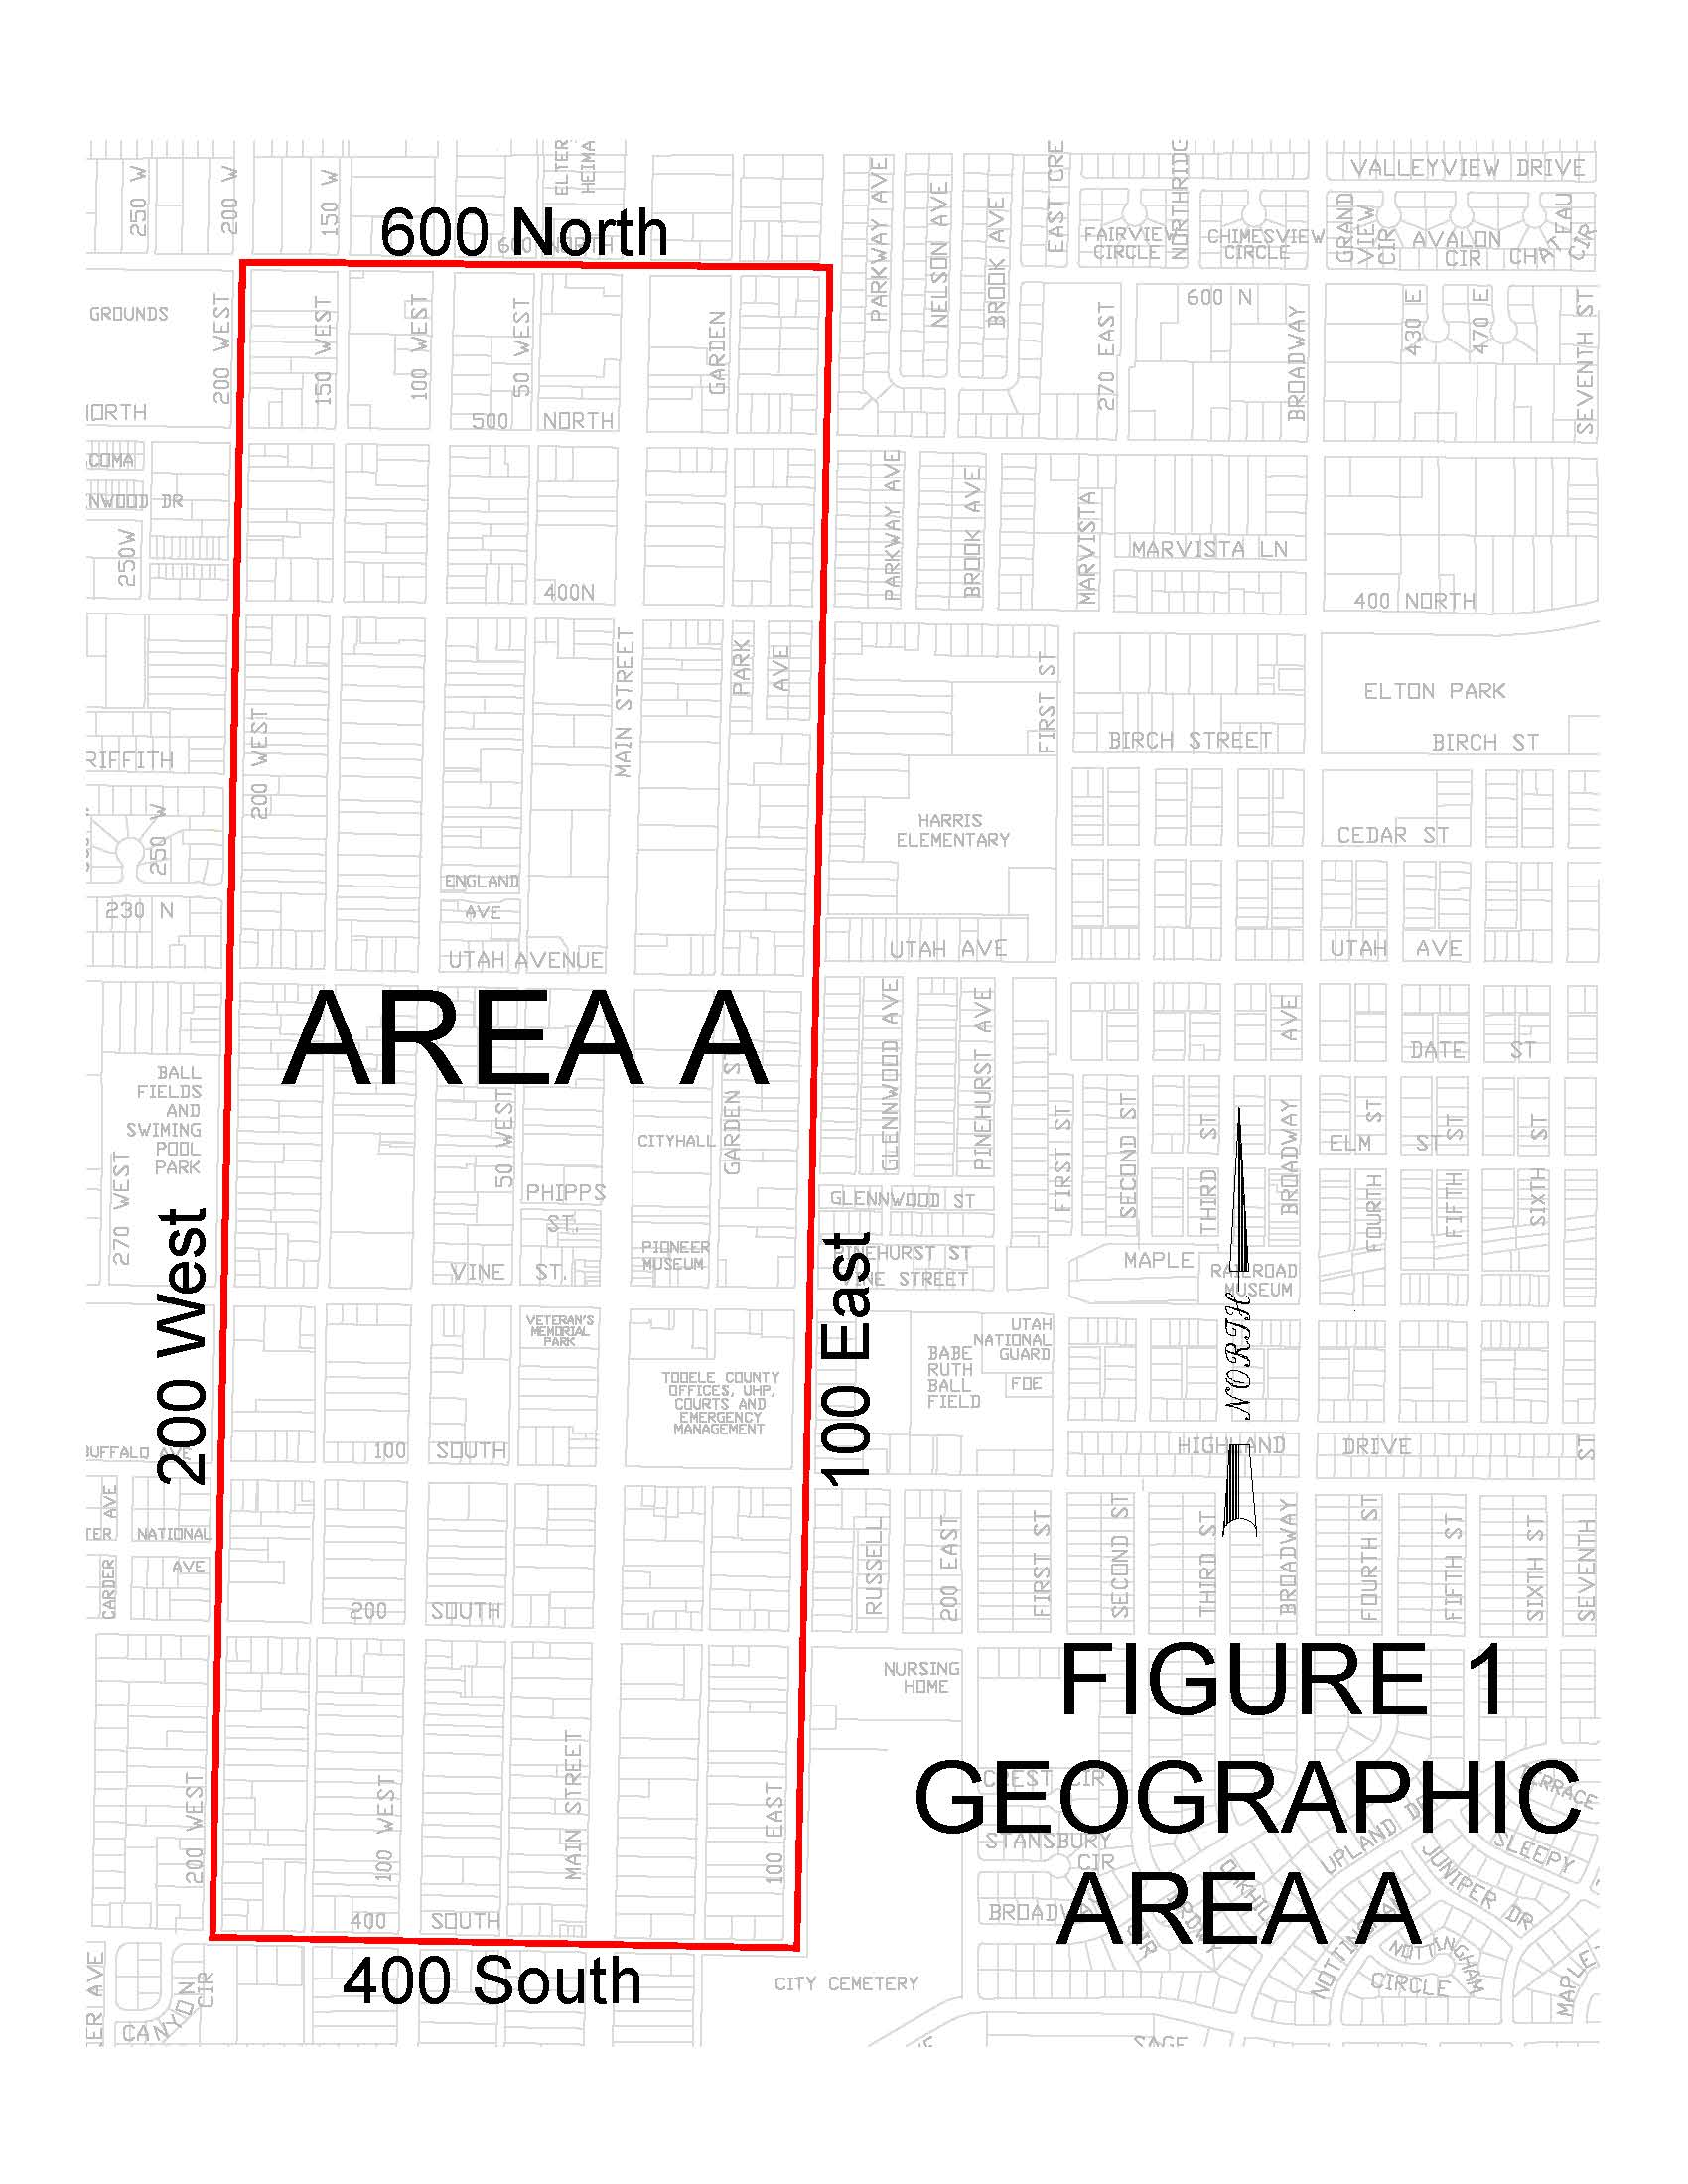 Title7Chapter14 Residential Zoning Districts Figures 1 and 2_Page_1